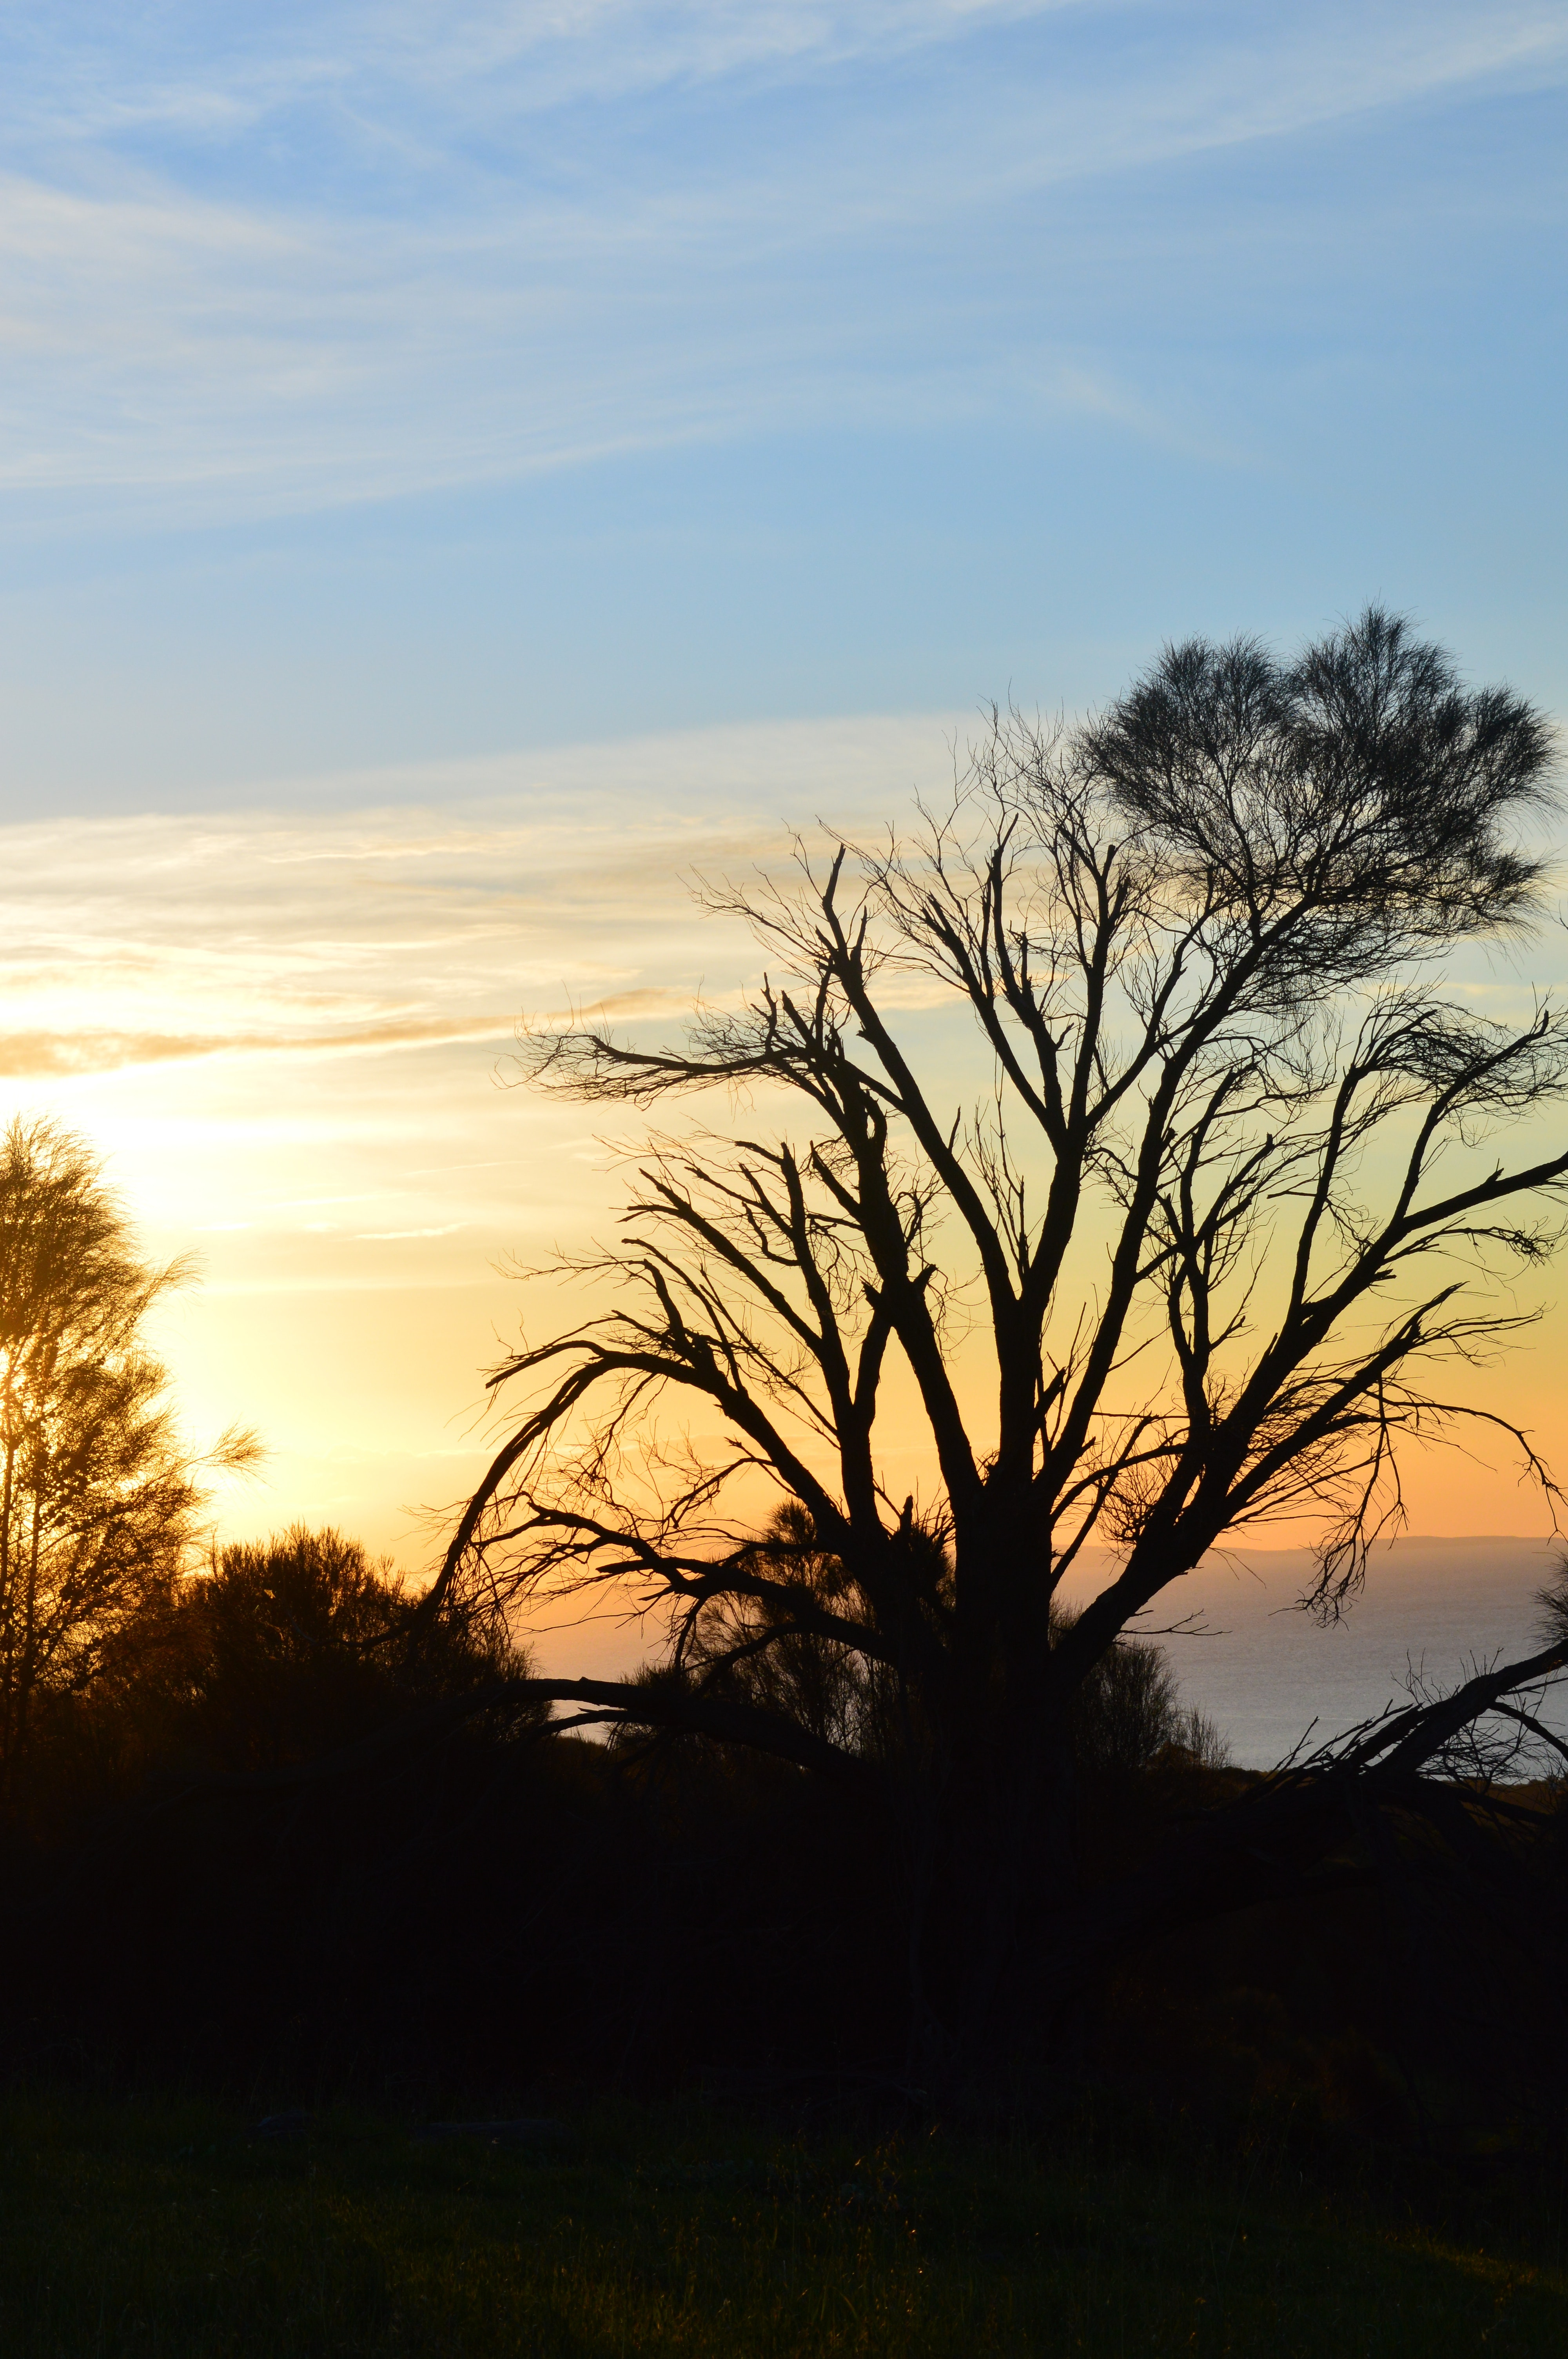 Silhouette of trees photo